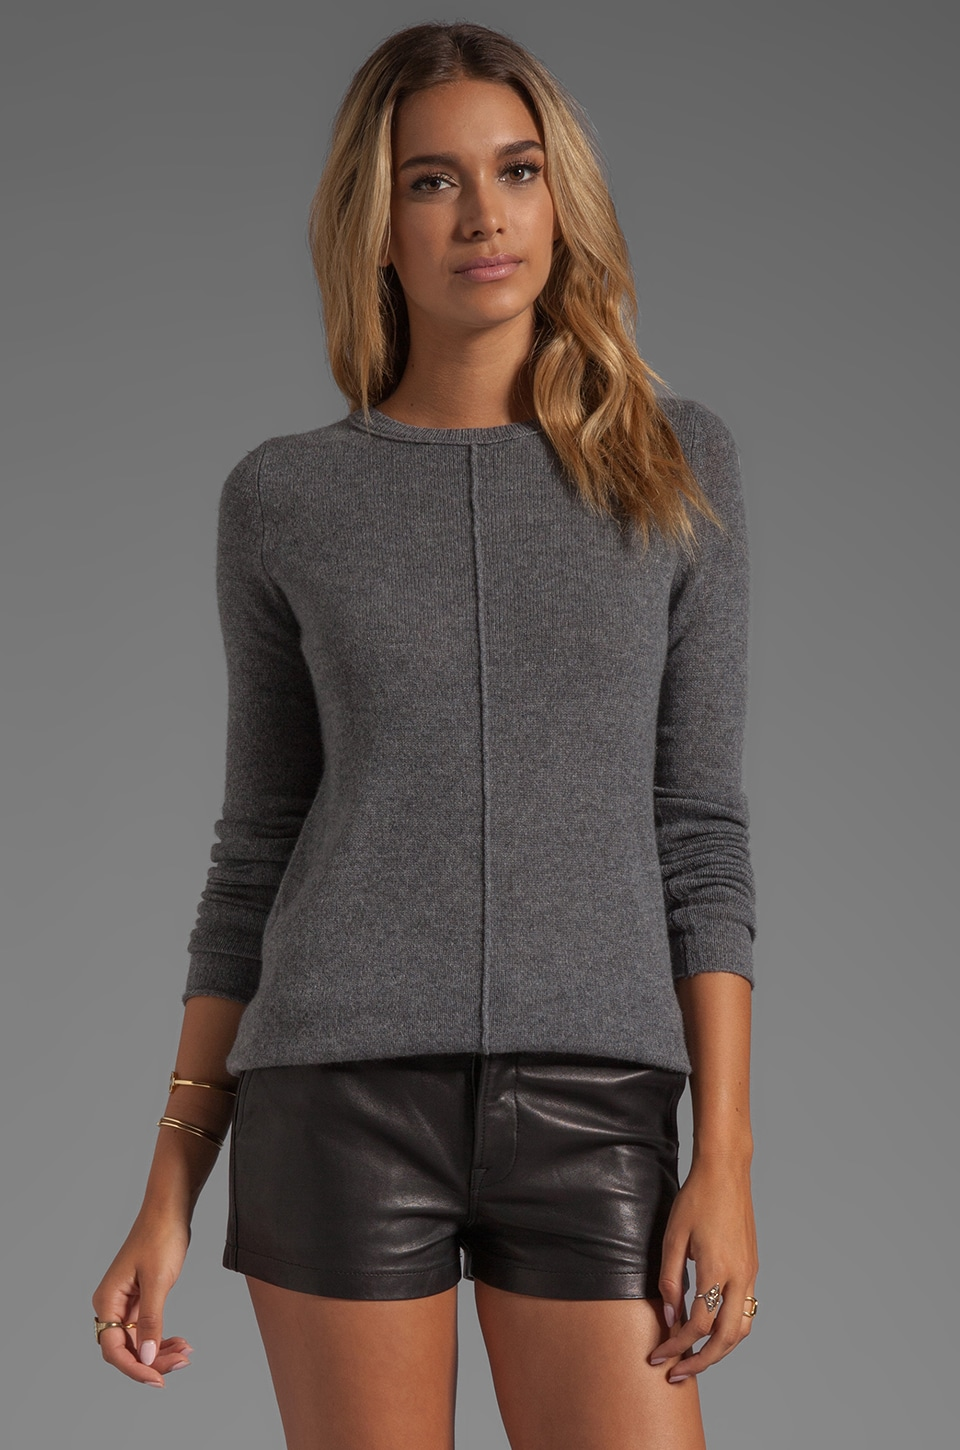 360 Sweater Bree Cashmere Pullover in Heather Grey